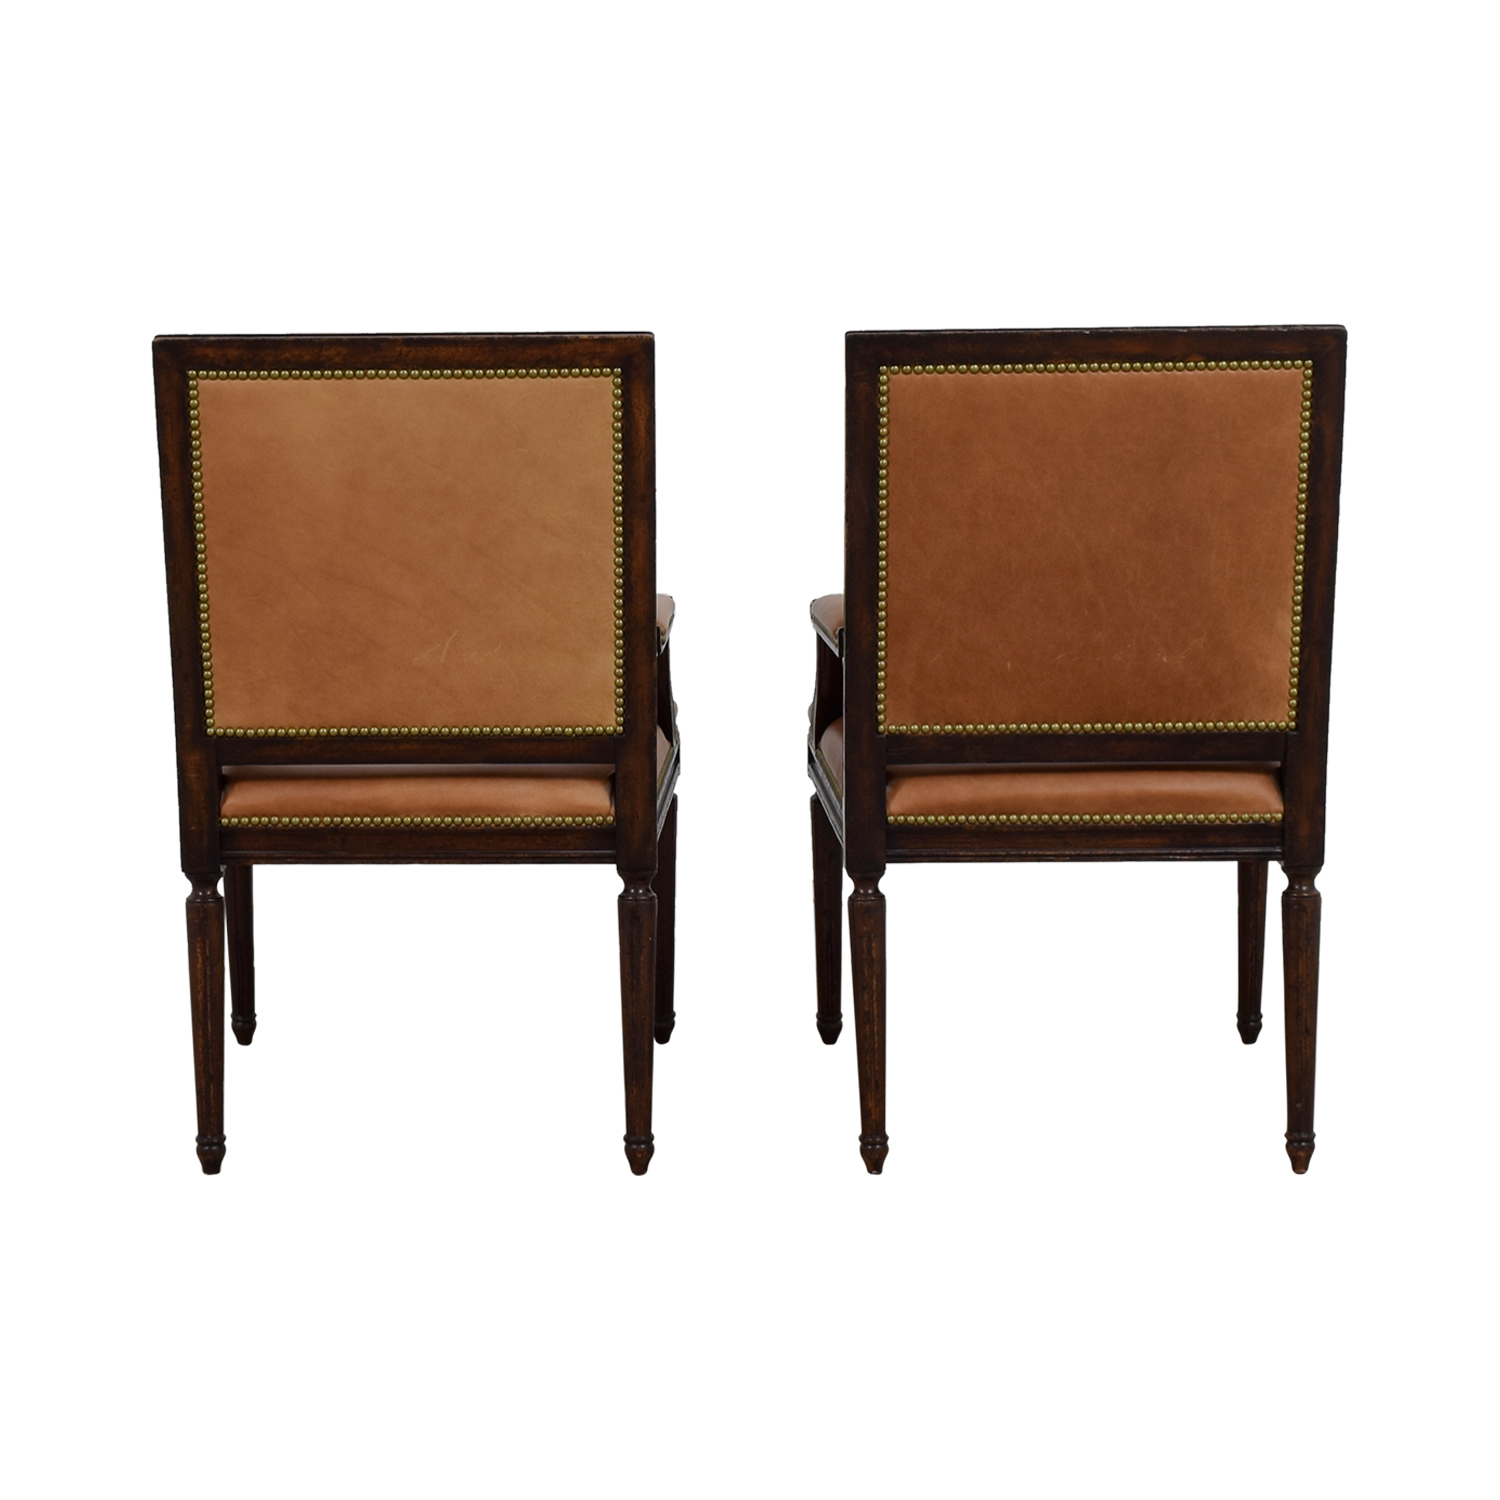 Henredon Henredon Brown Leather Nailhead Accent Chairs Accent Chairs